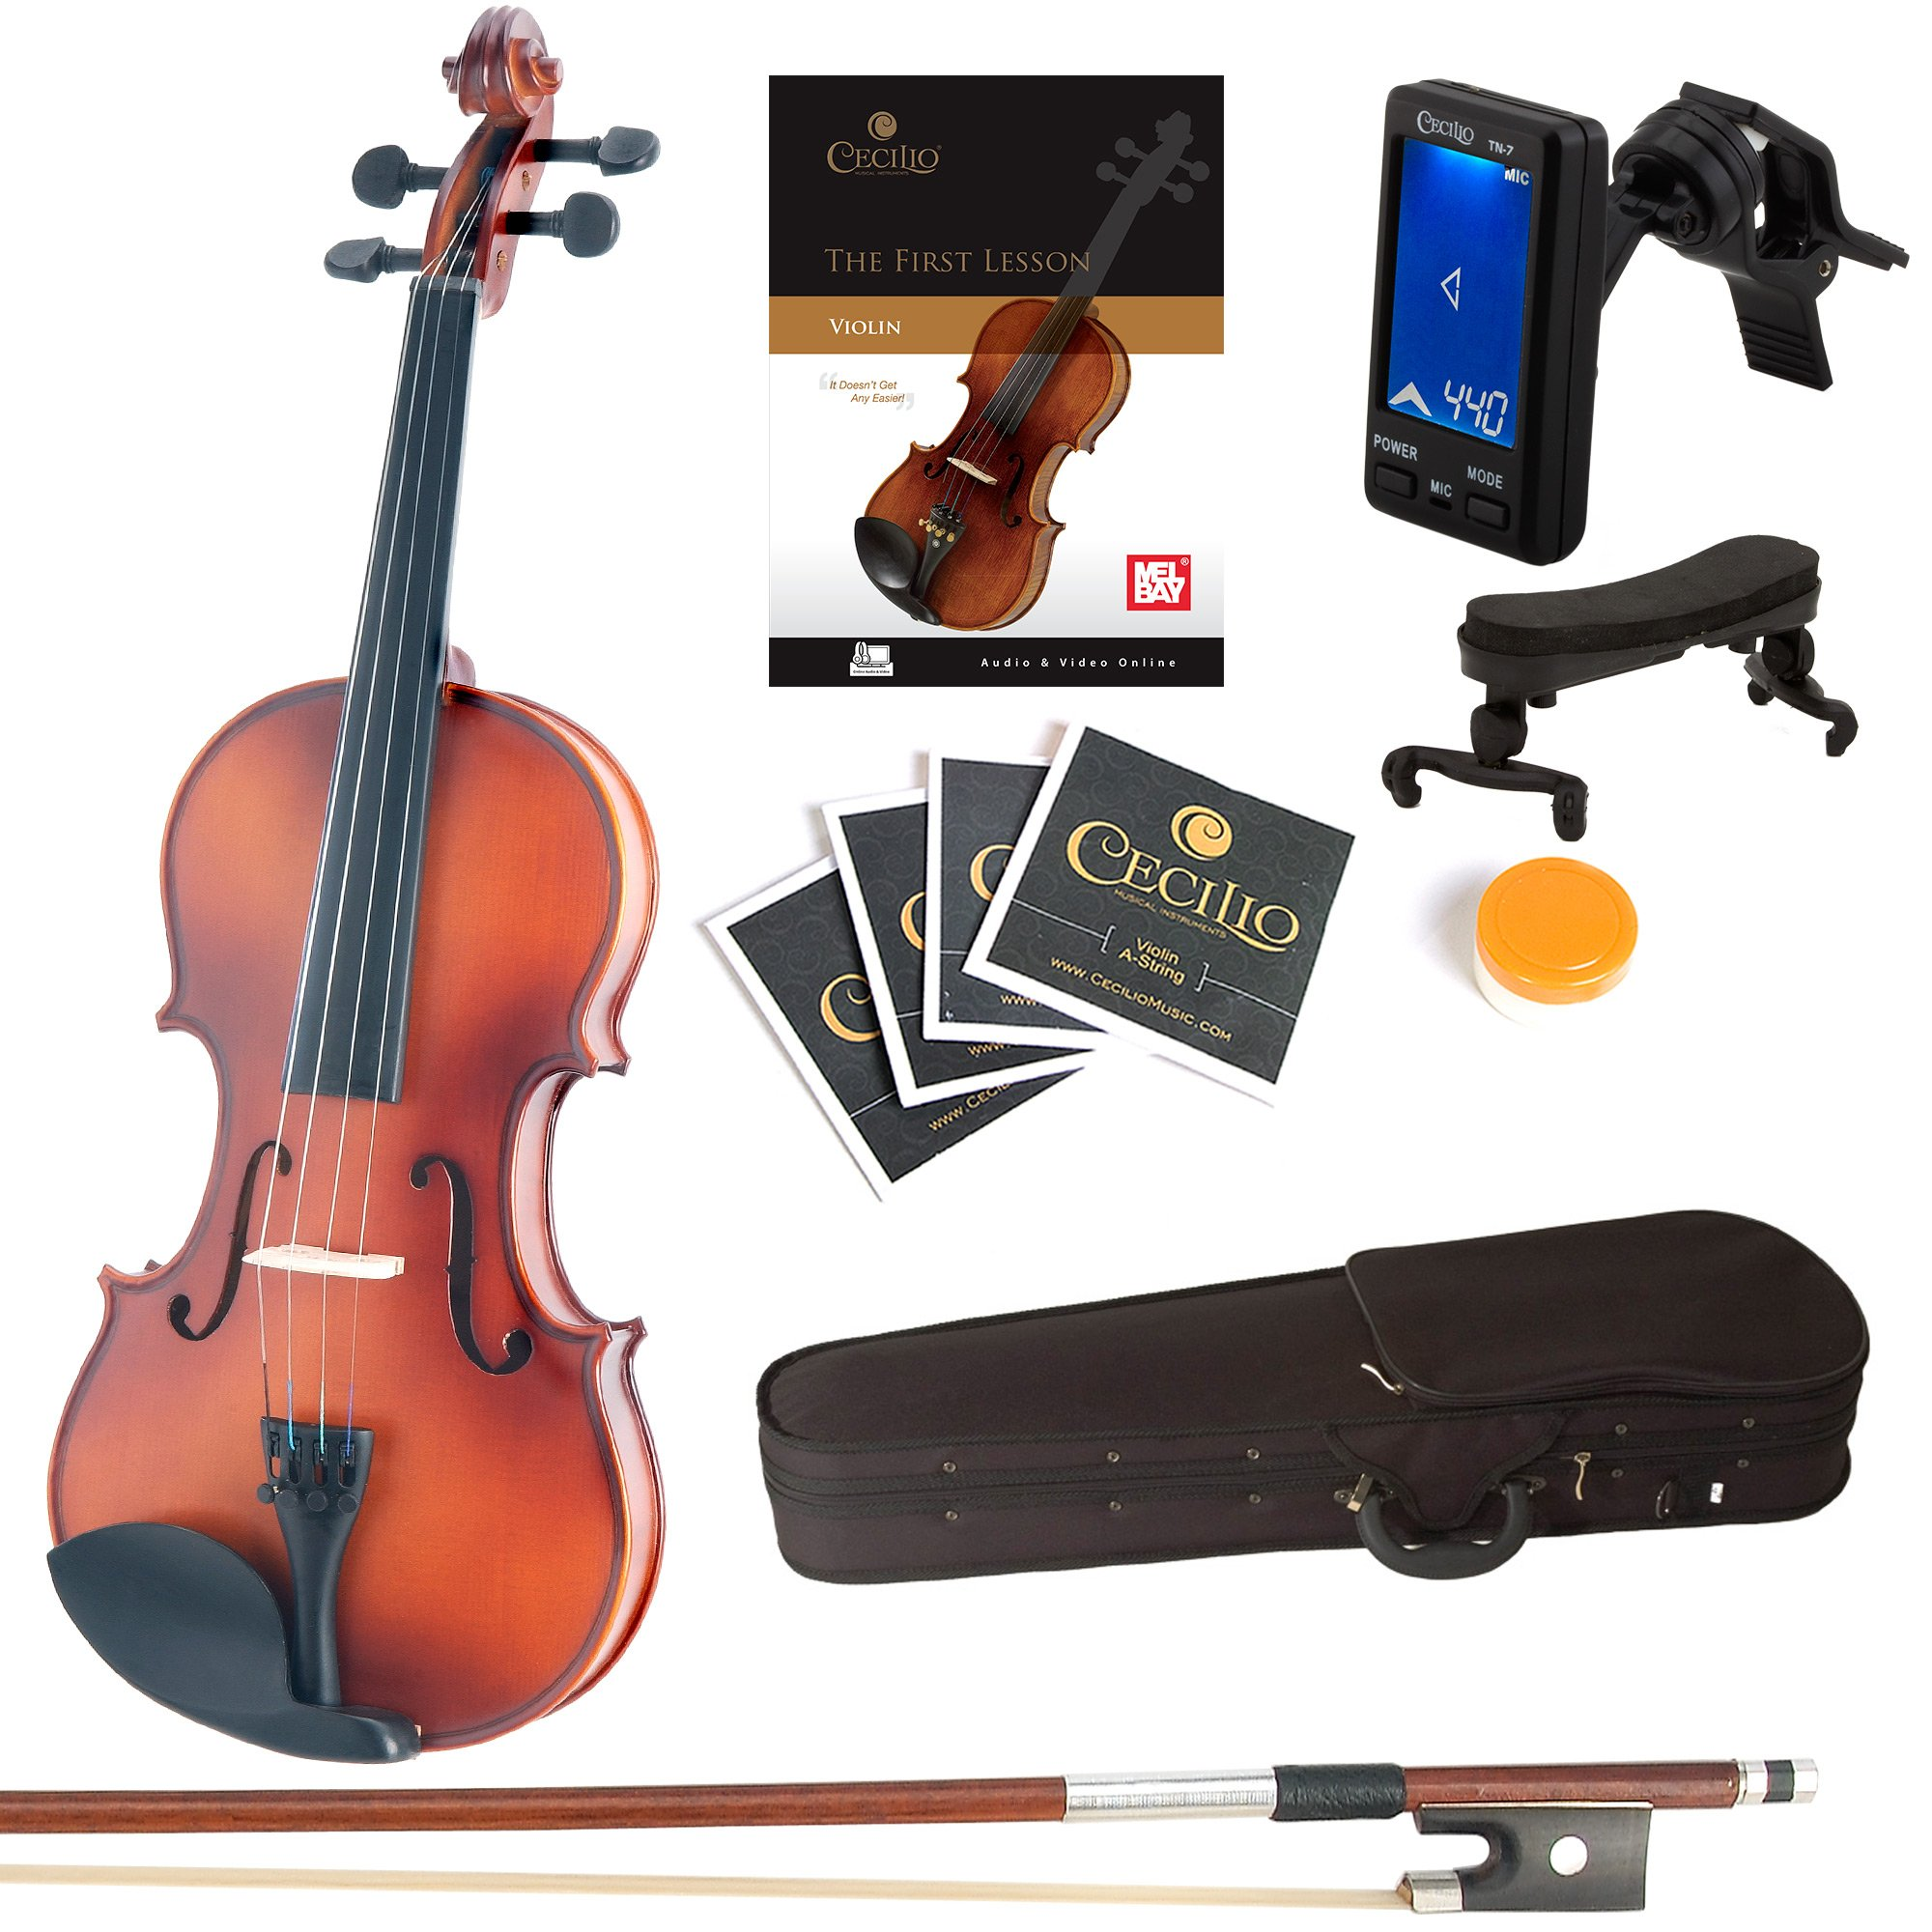 Mendini Full Size 4/4 MV300 Solid Wood Violin with Tuner, Lesson Book, Extra Strings, Shoulder Rest, Bow and Case, Satin Antique Finish by Mendini by Cecilio